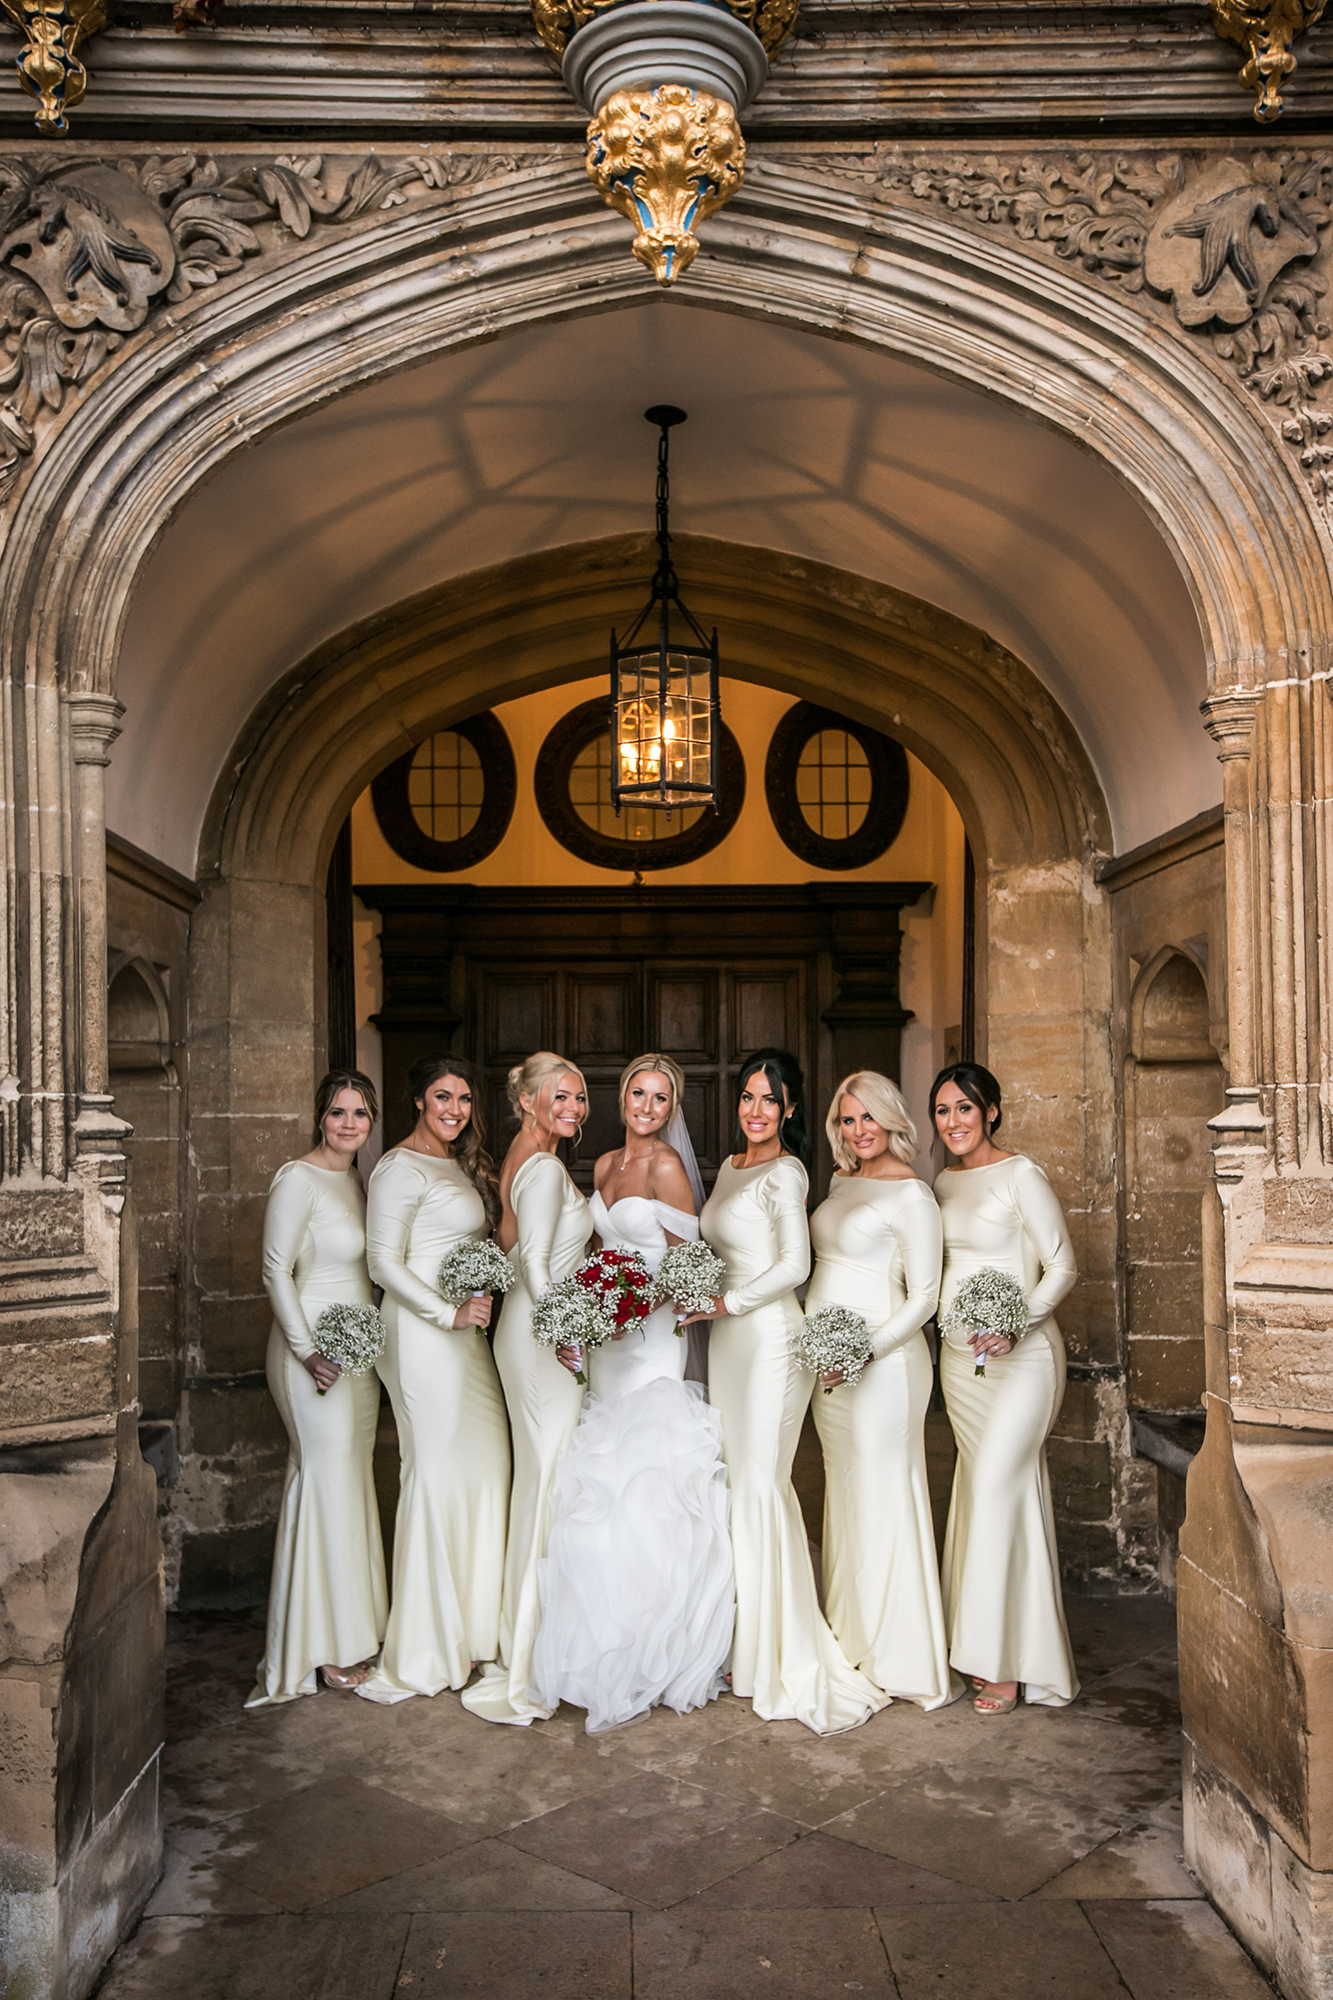 The Bride and Bridesmaids posing in the entrance hall of Hengrave Hall